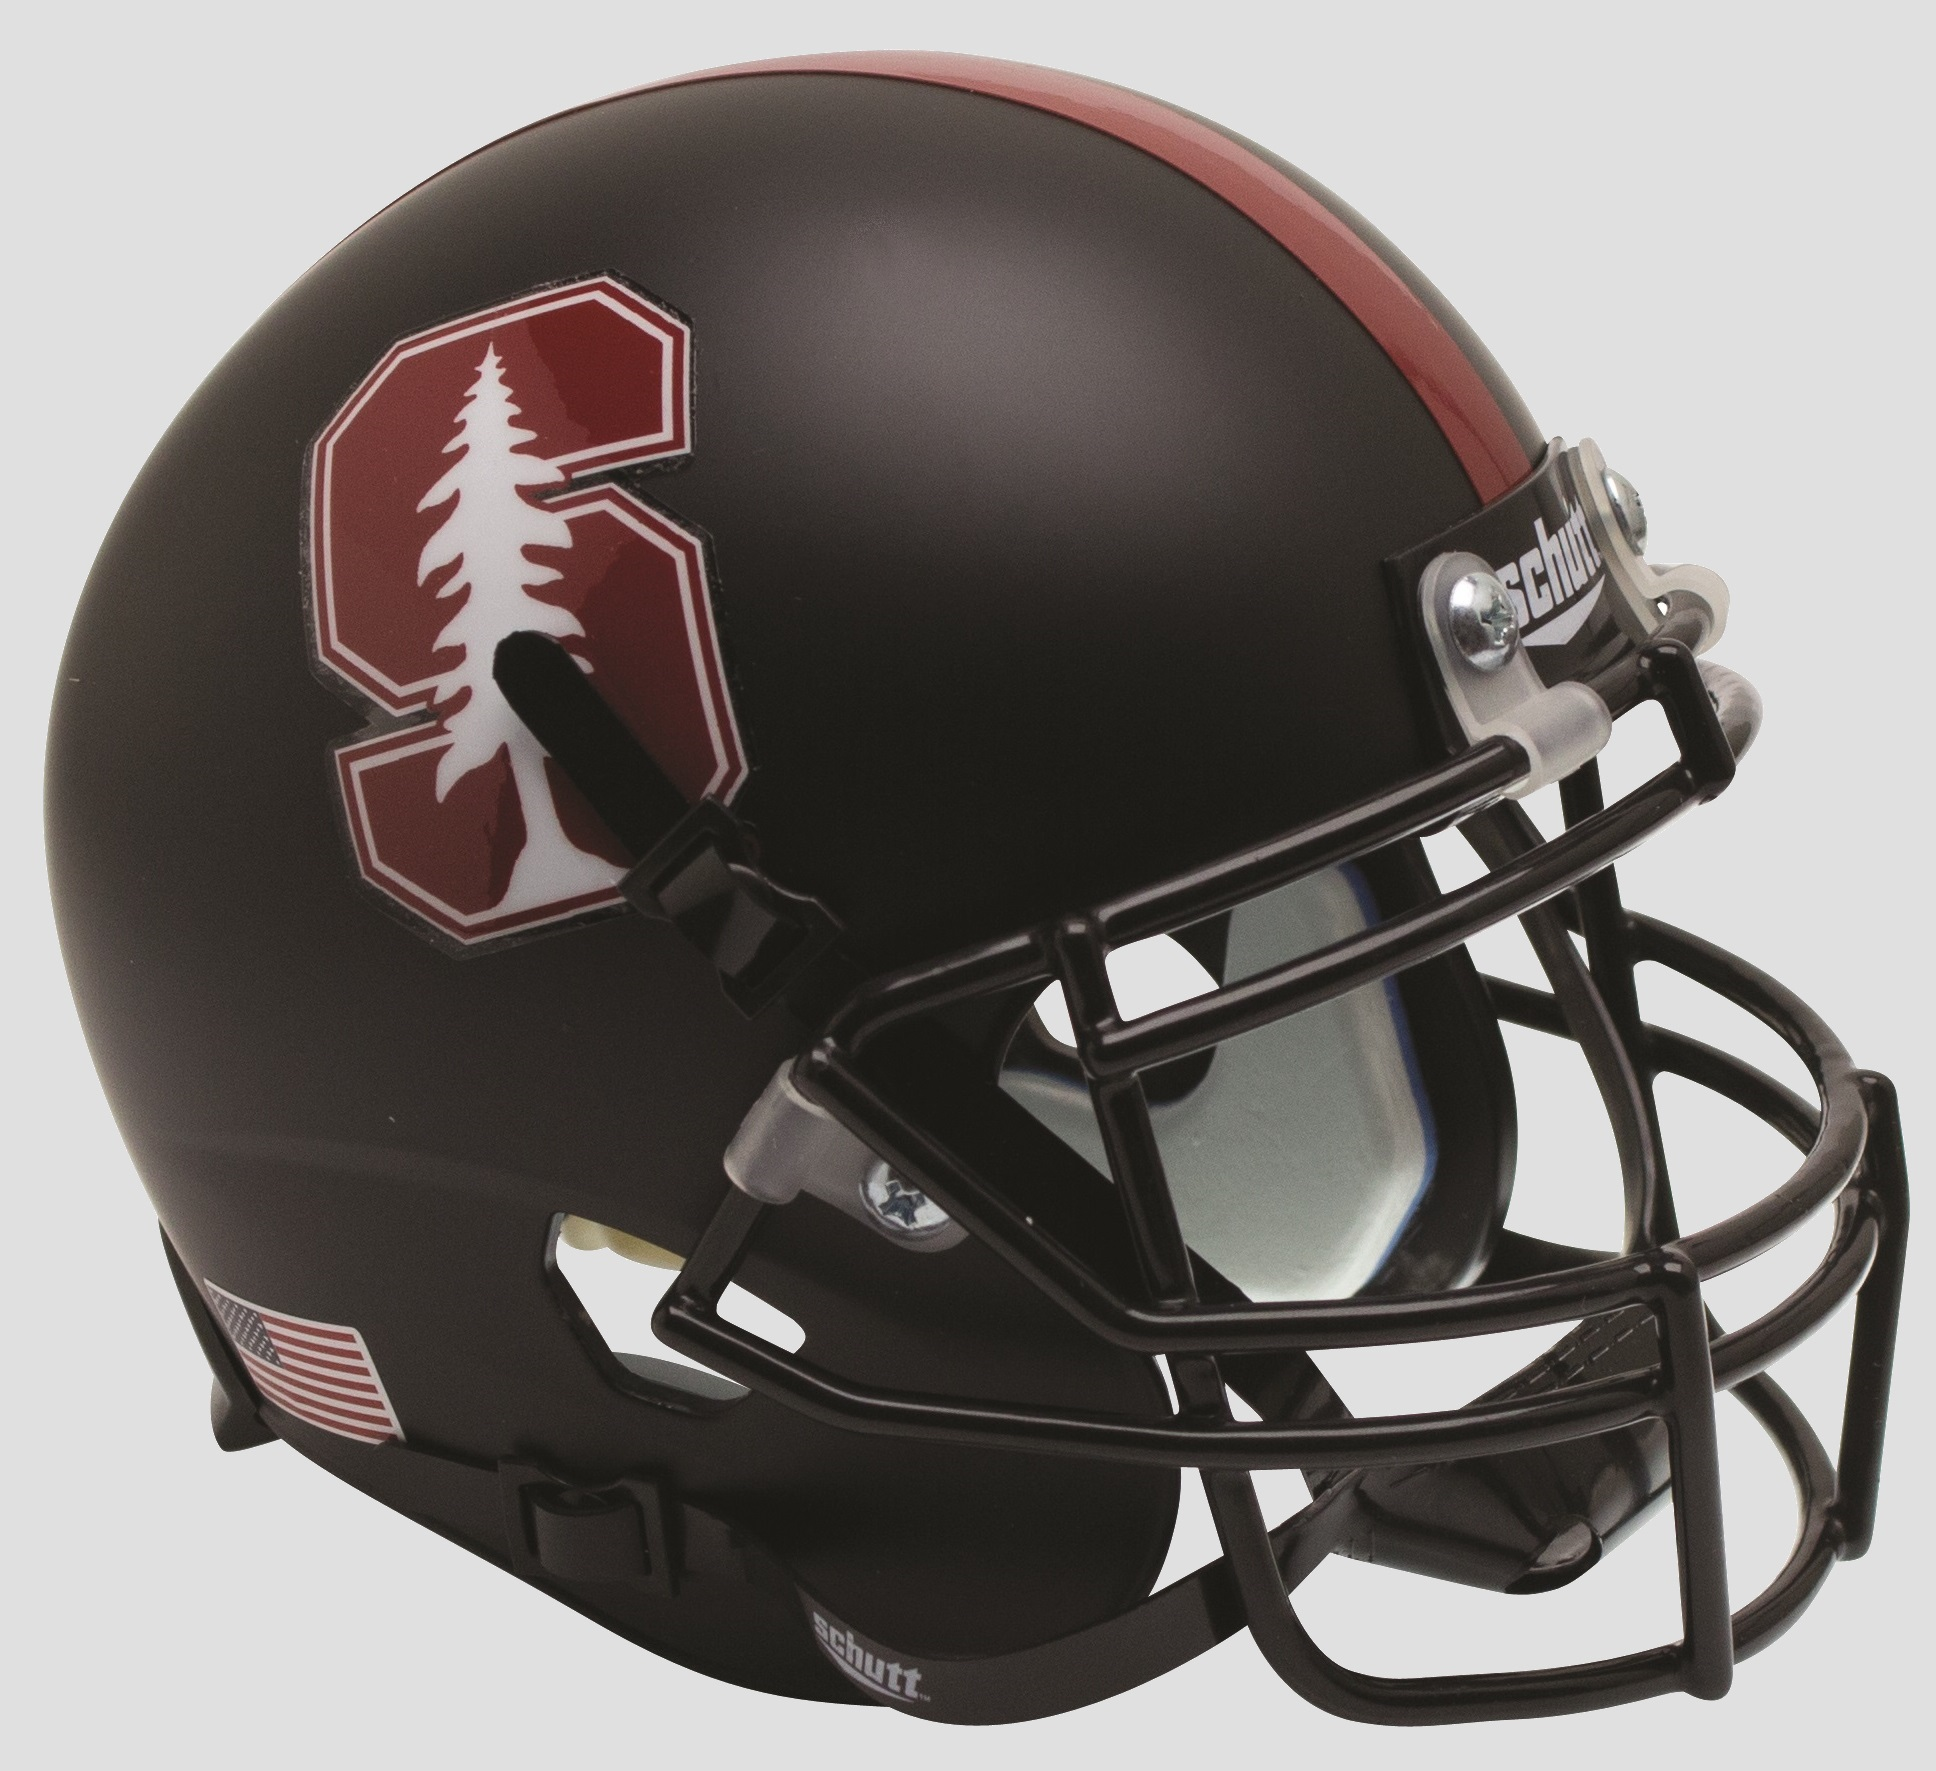 Stanford Cardinal Full XP Replica Football Helmet Schutt <B>Matte Black Tree</B>